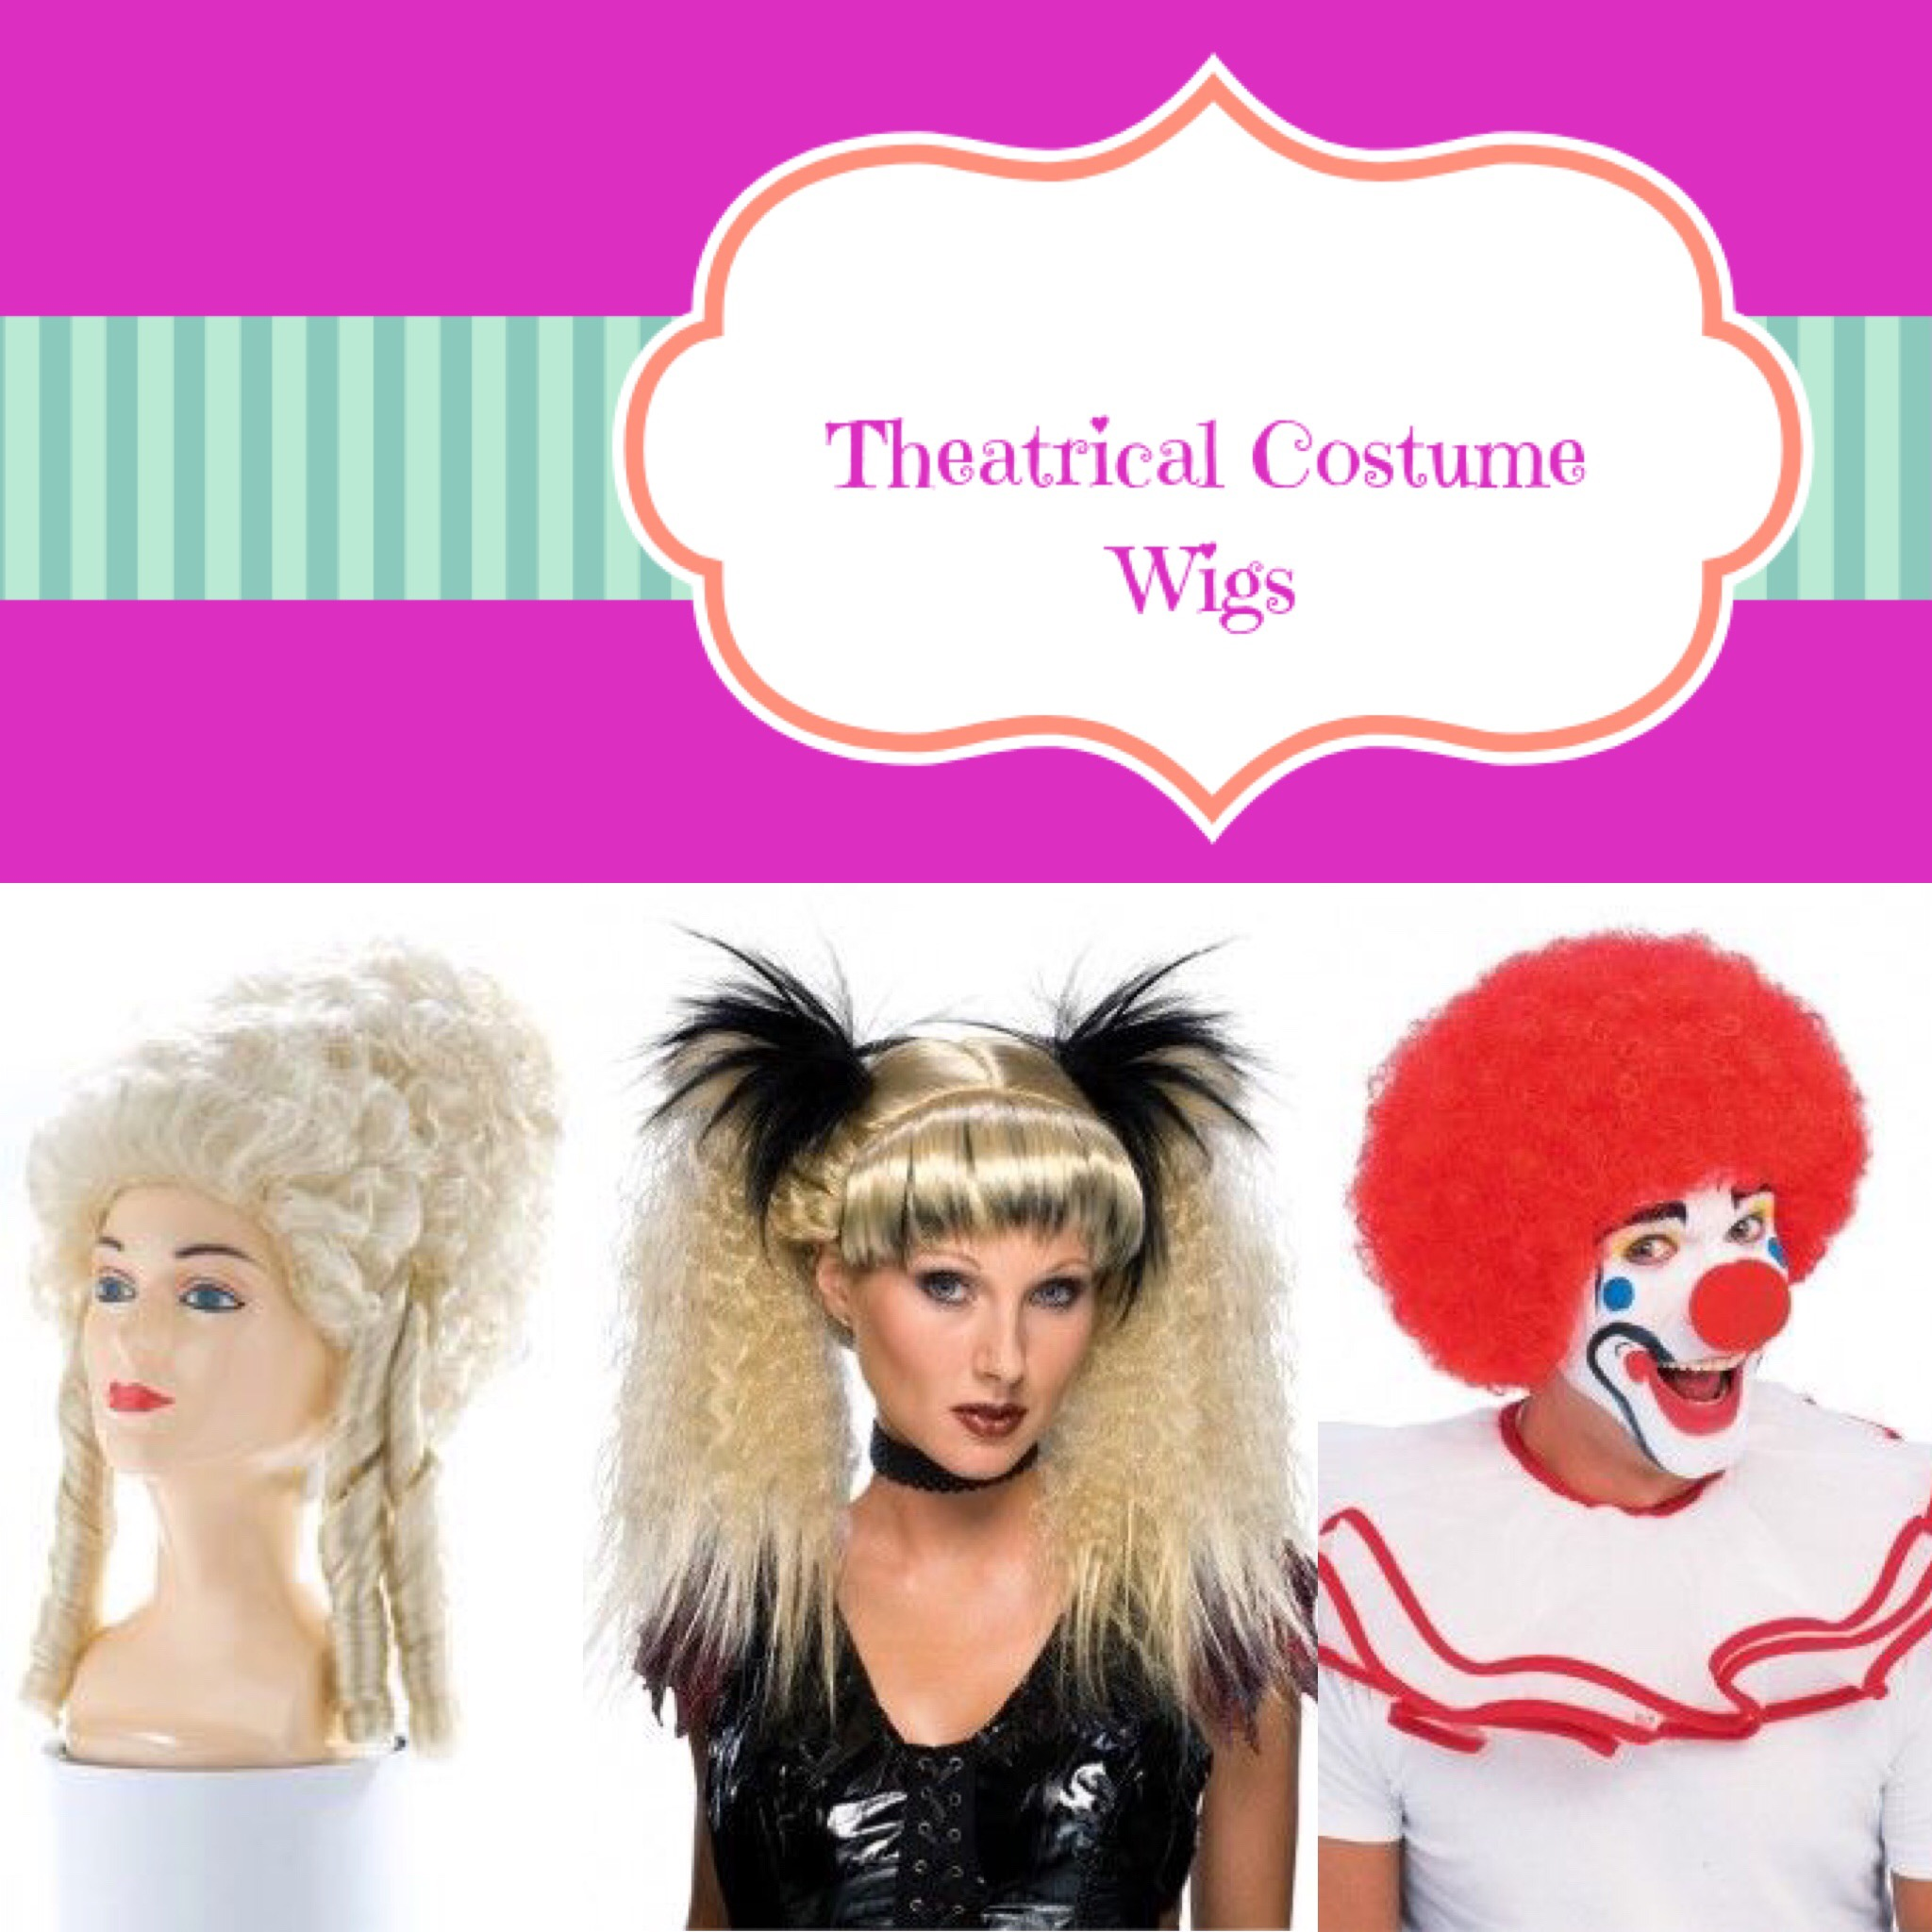 Theatrical Costume Wigs